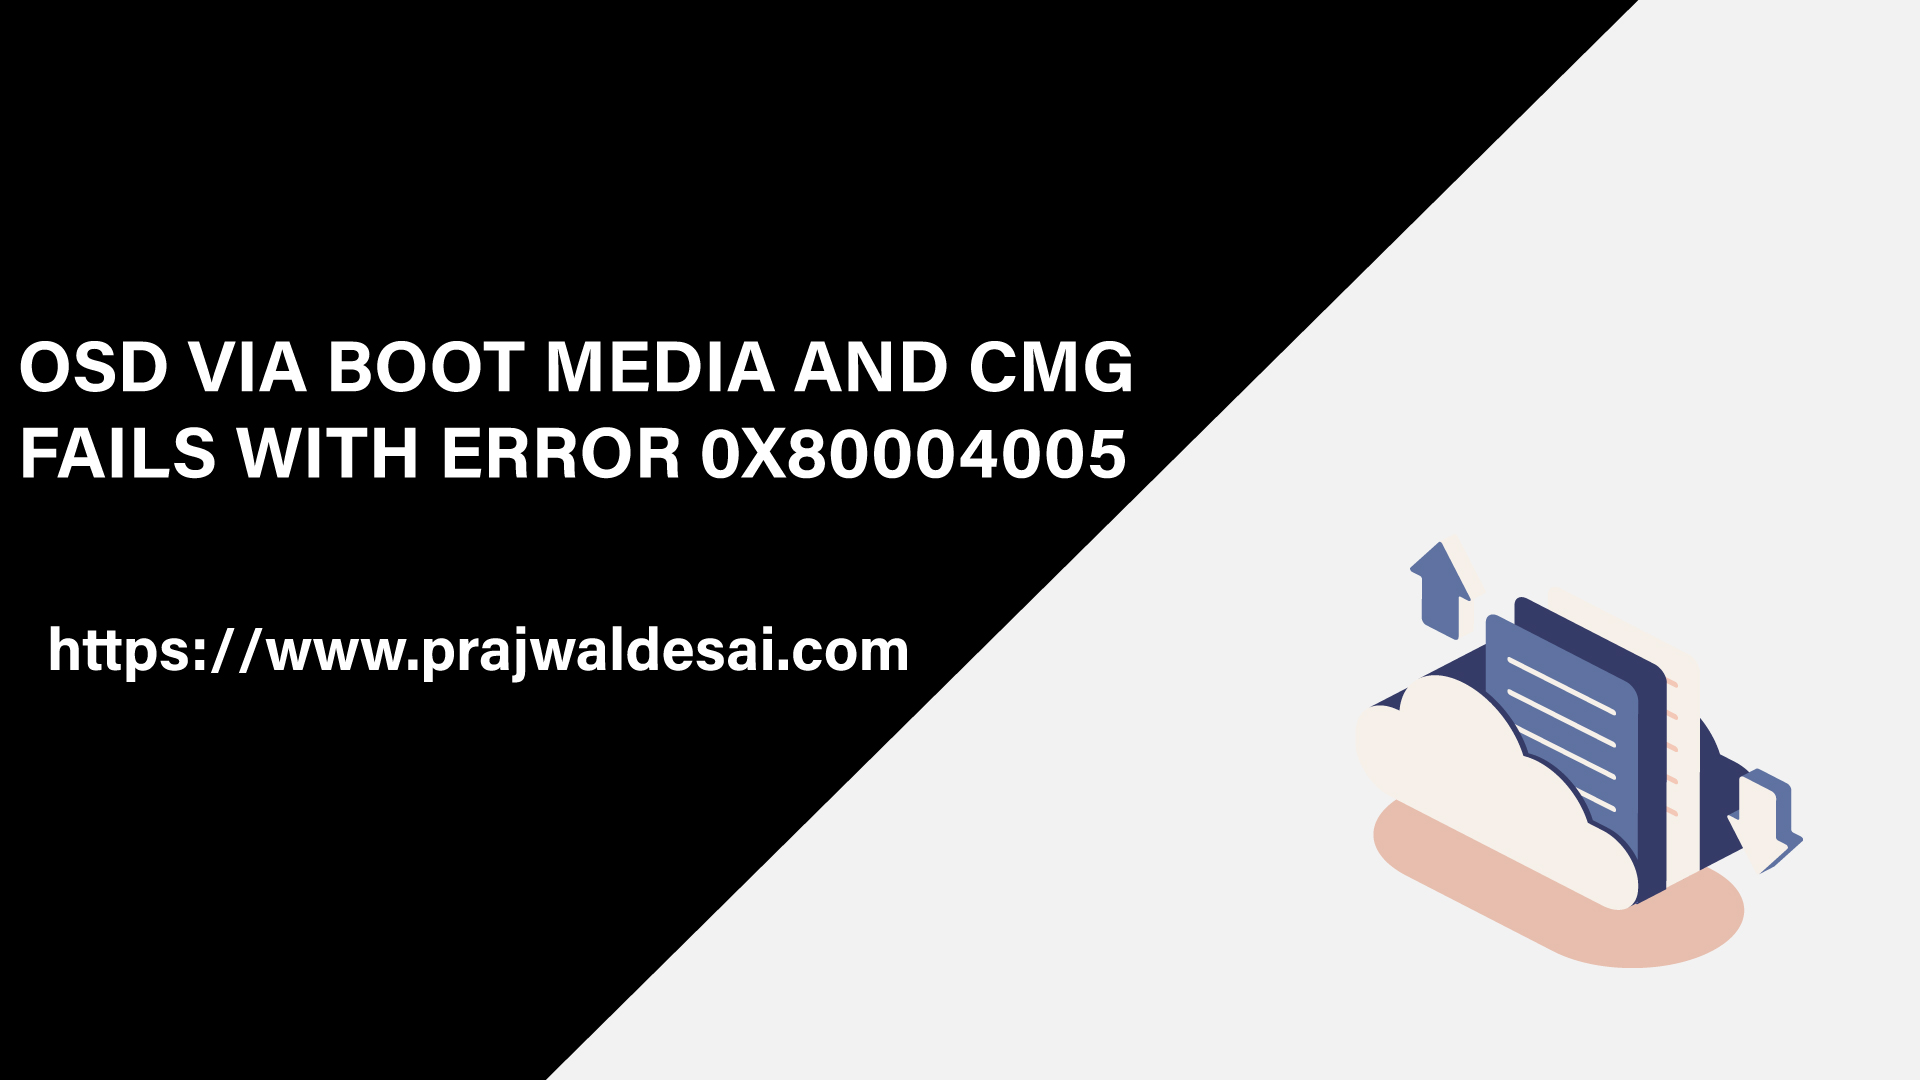 OSD via Boot Media and CMG Fails with Error 0x80004005